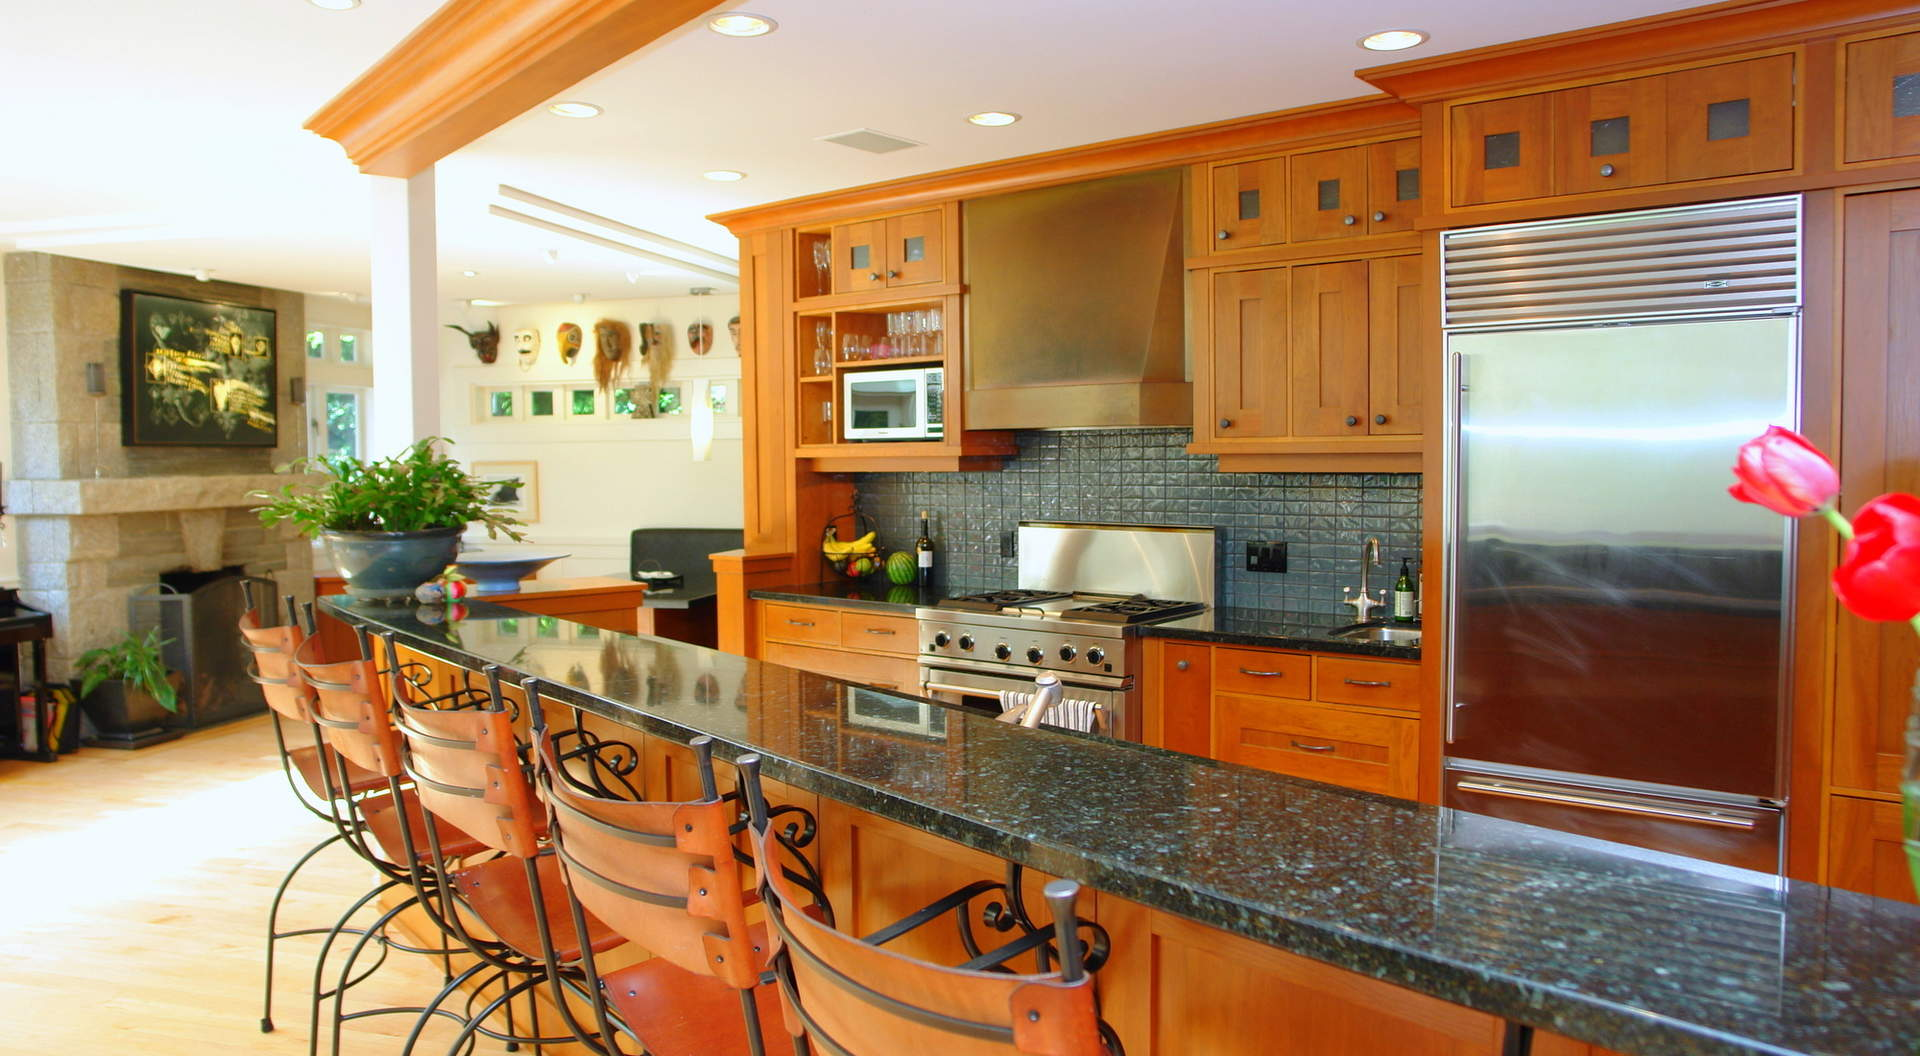 Sensational Breakfast Bar and Kitchen